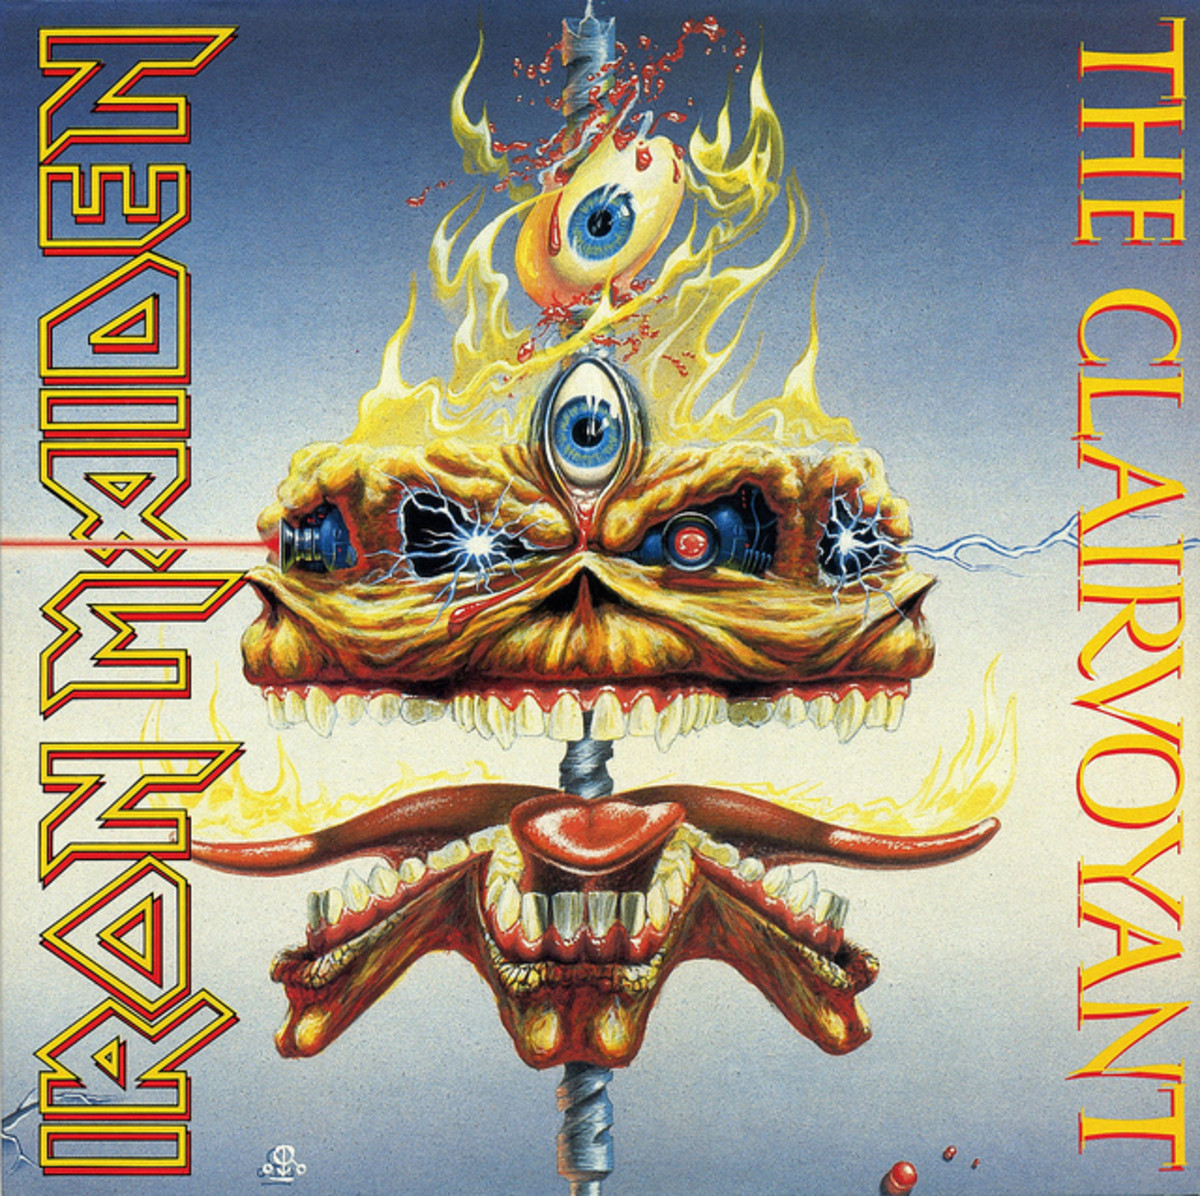 "Iron Maiden ""The Clairvoyant"" EMI 12-EM-79 12"" Vinyl Single UK Pressing (1988) Cover Art by Derek Riggs"